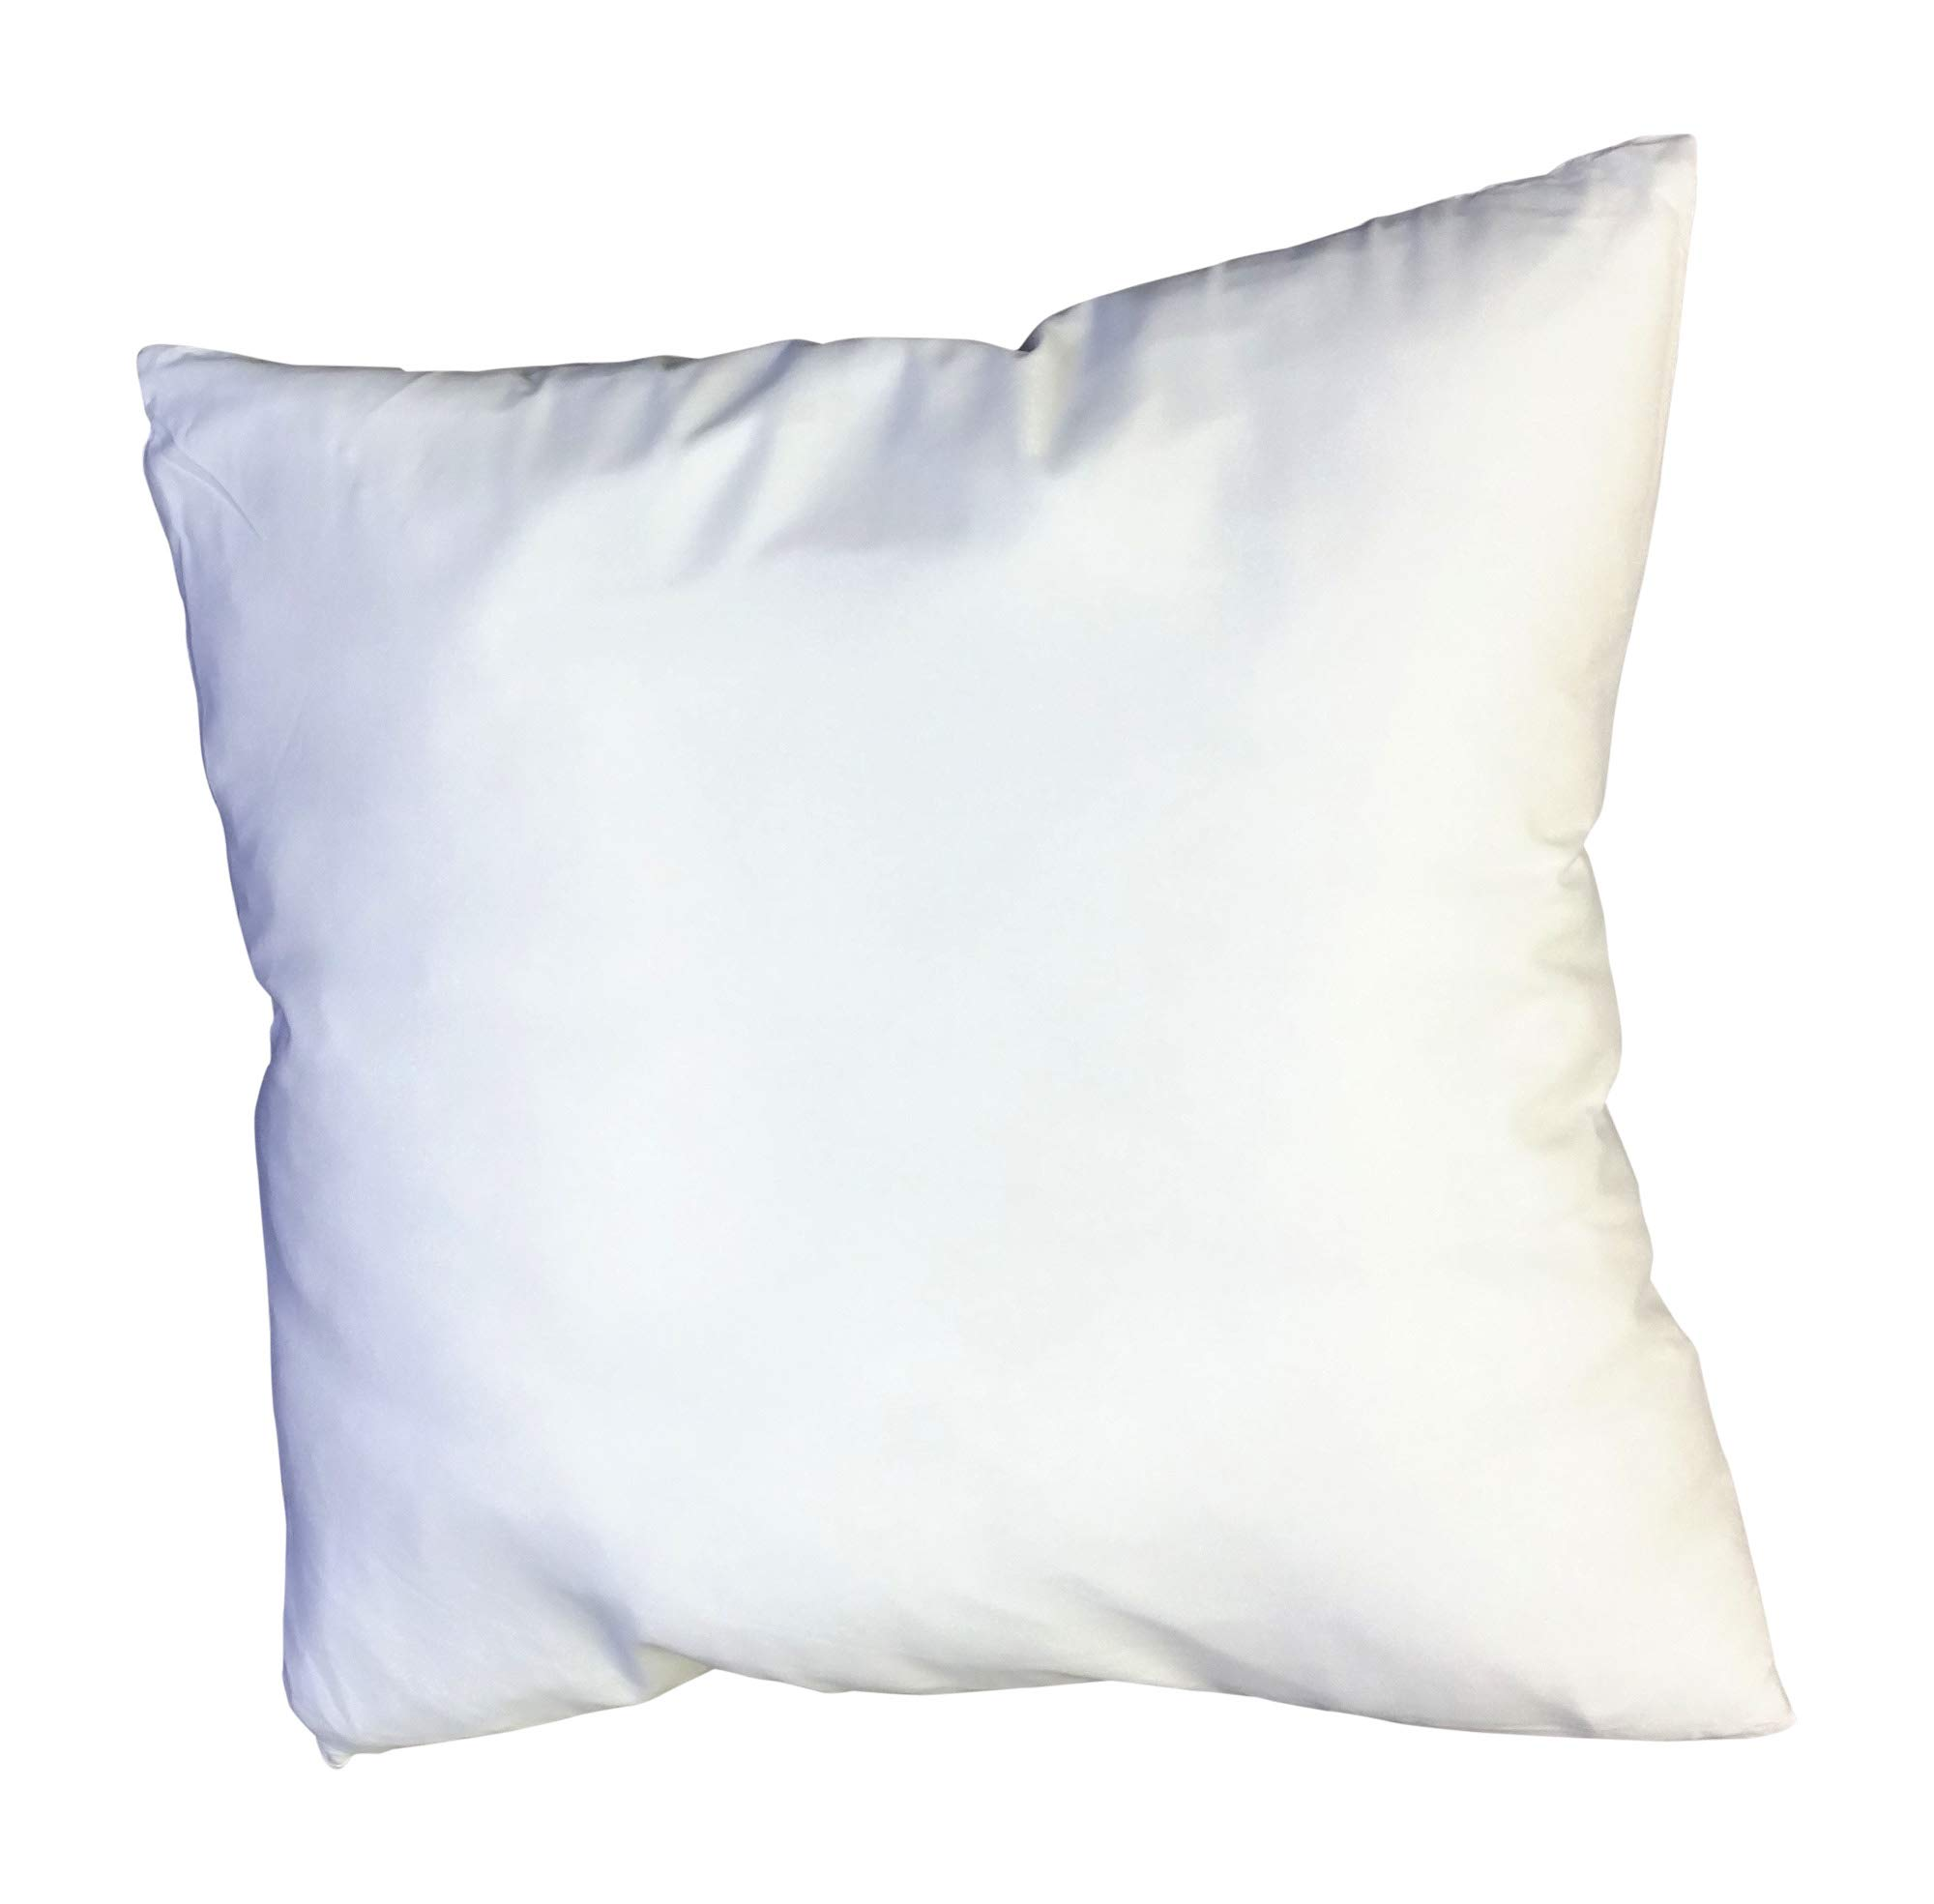 Euro 28'' X 28'' Pillow Insert by Web Linens Incorporated